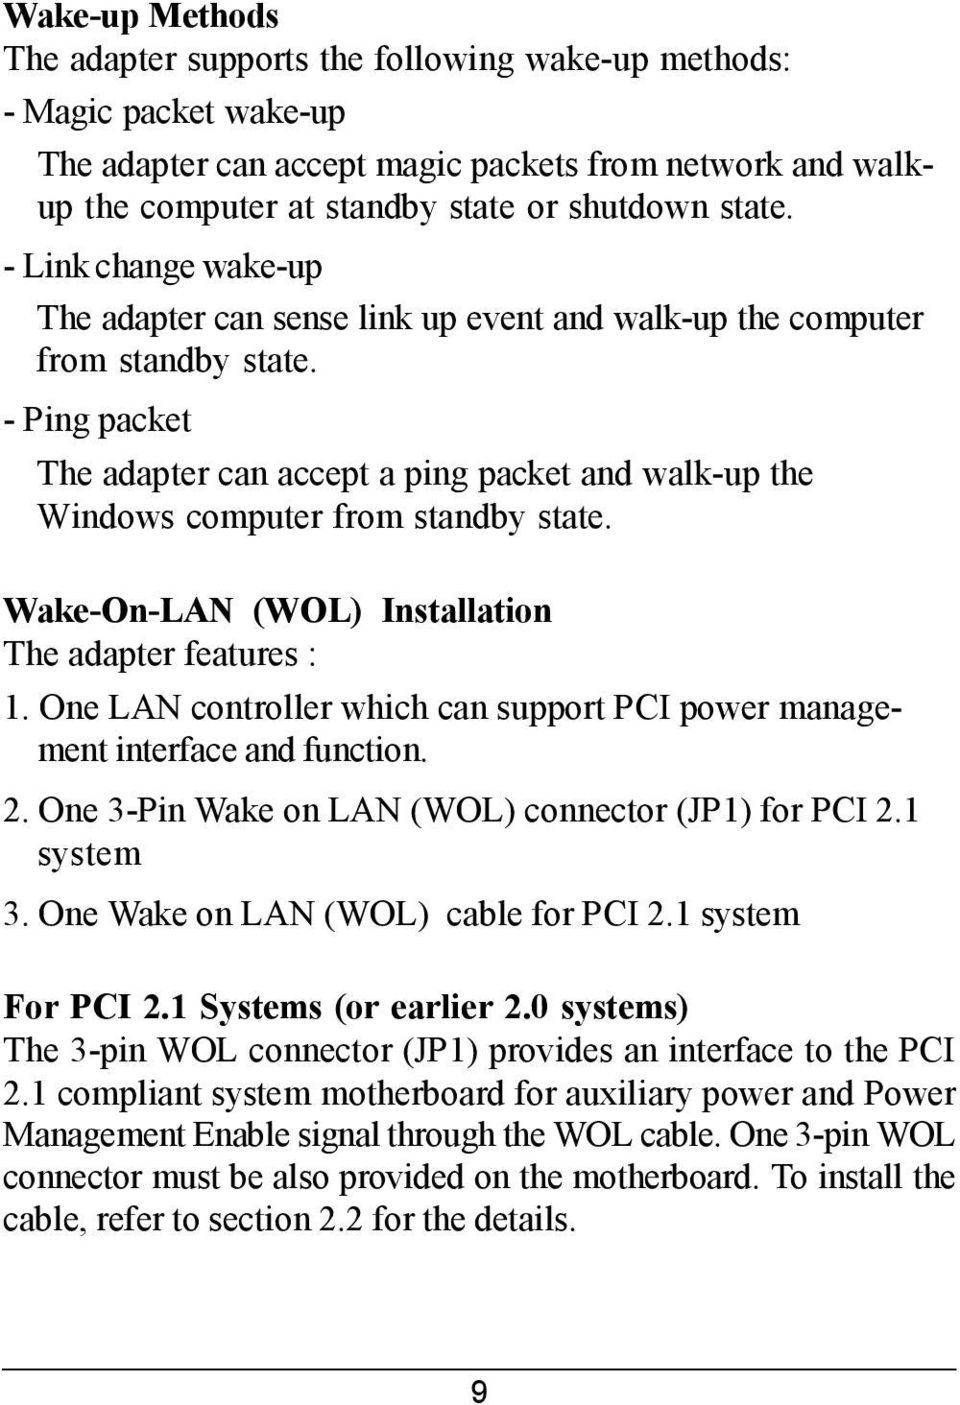 - Ping packet The adapter can accept a ping packet and walk-up the Windows computer from standby state. Wake-On-LAN (WOL) Installation The adapter features : 1.